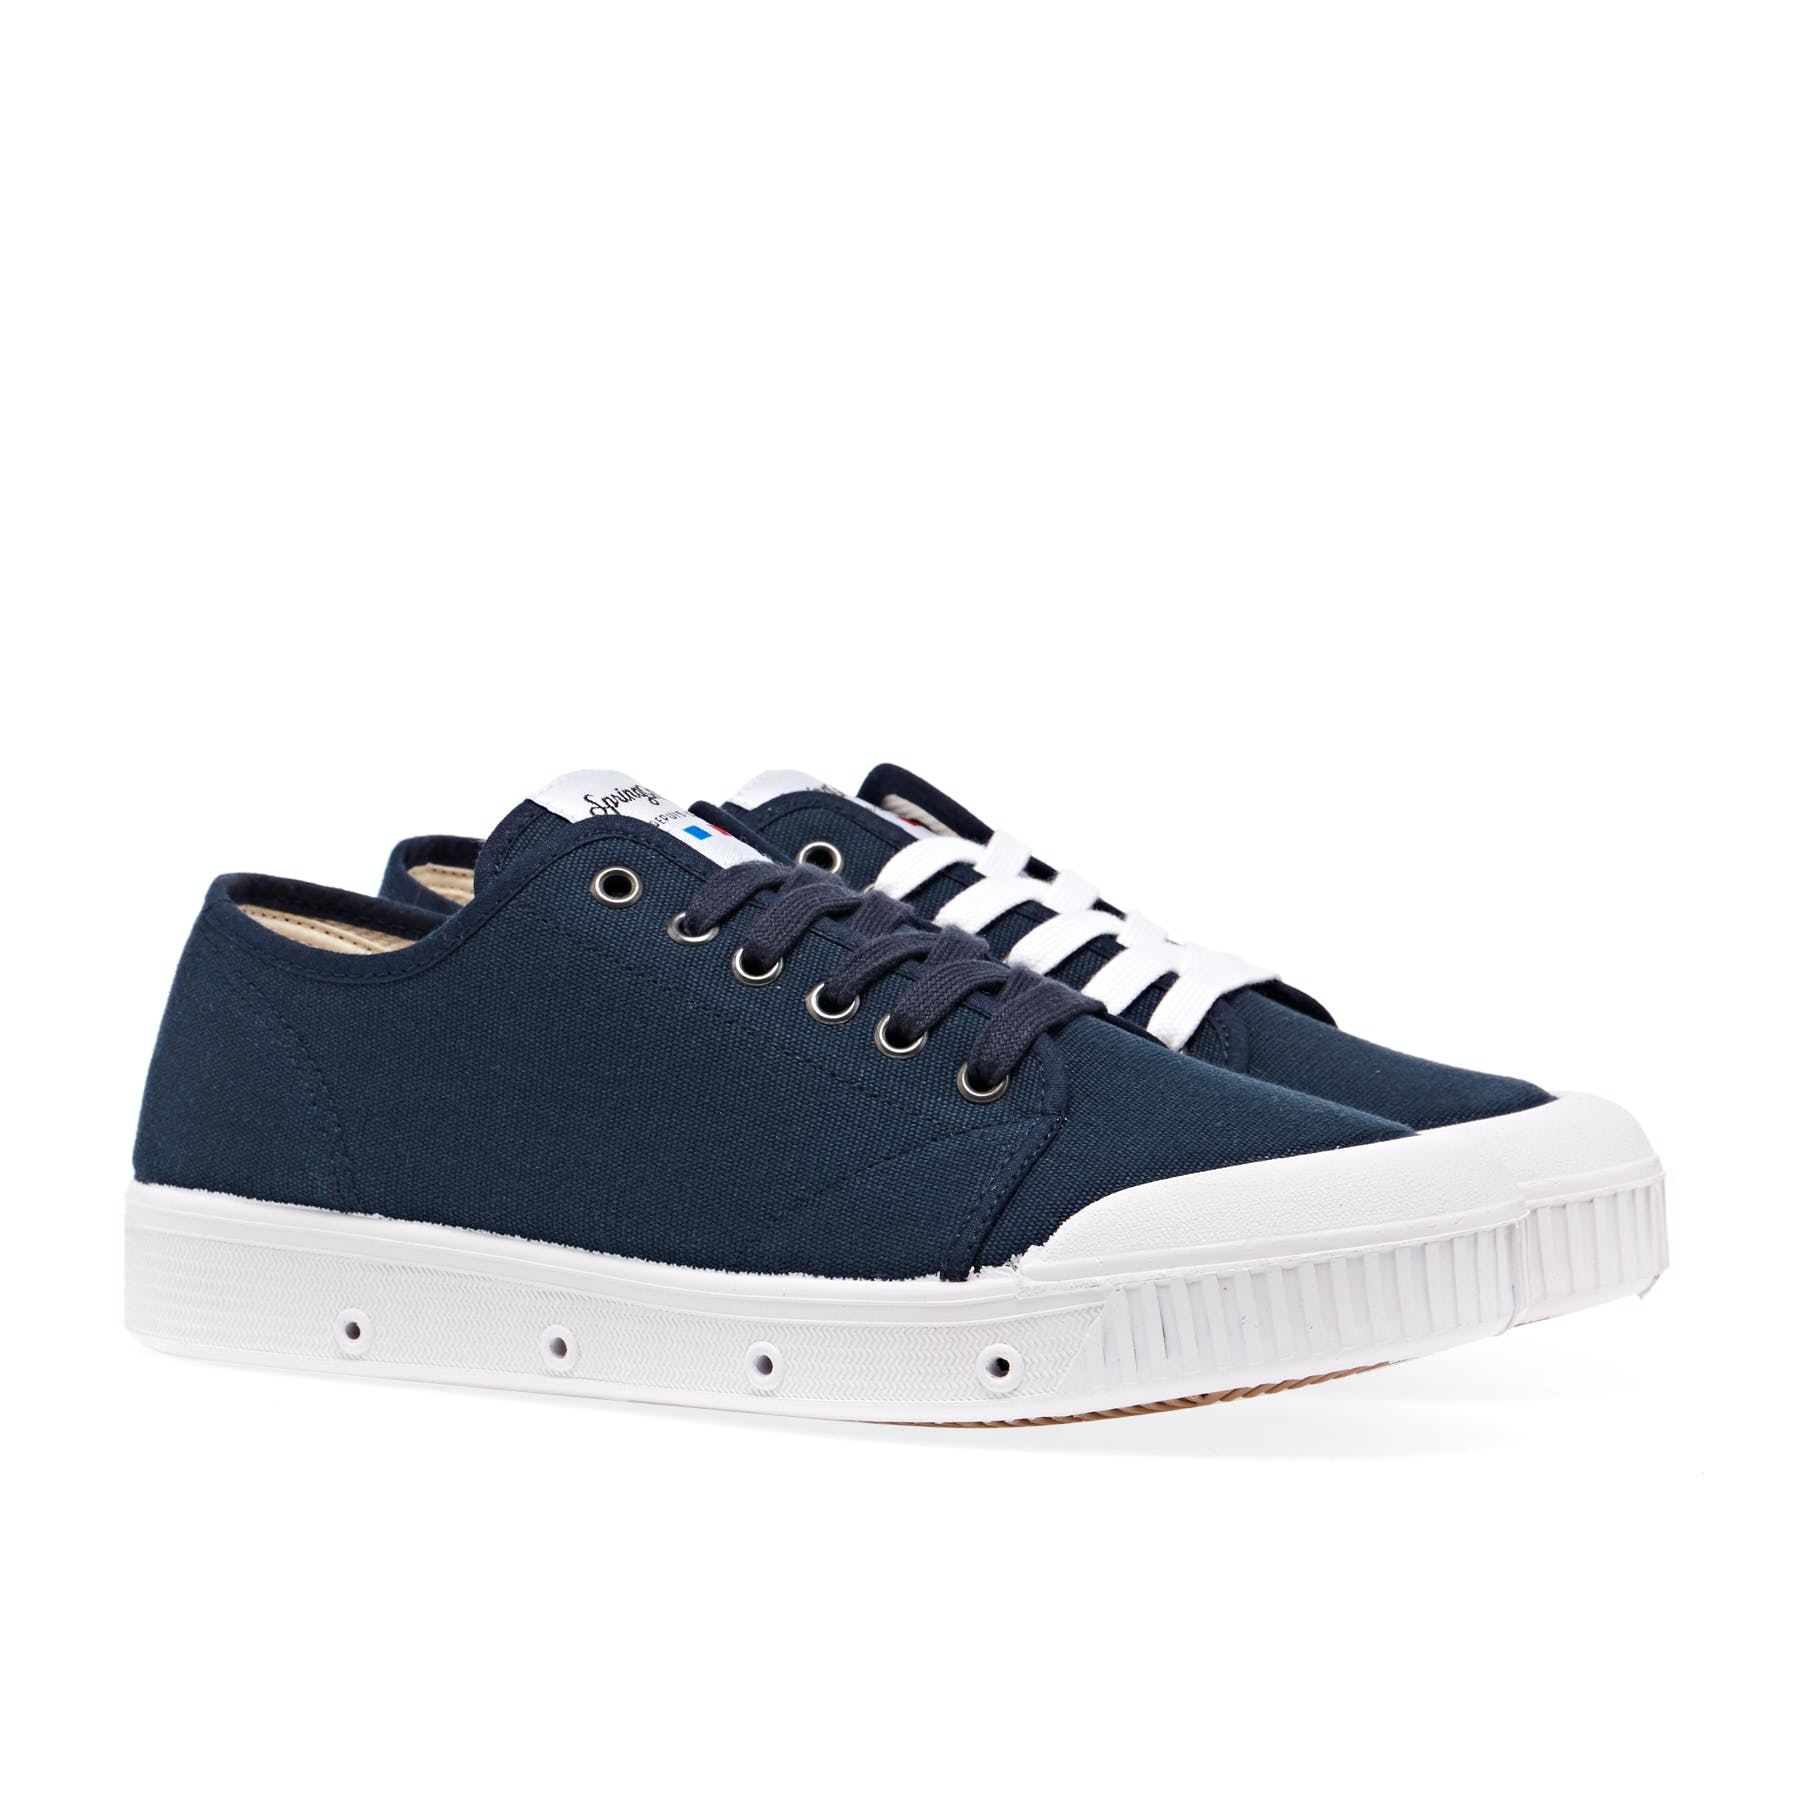 Details about  /SPRING COURT Men/'s Canvas B2 Eyelets M Sneakers NEW